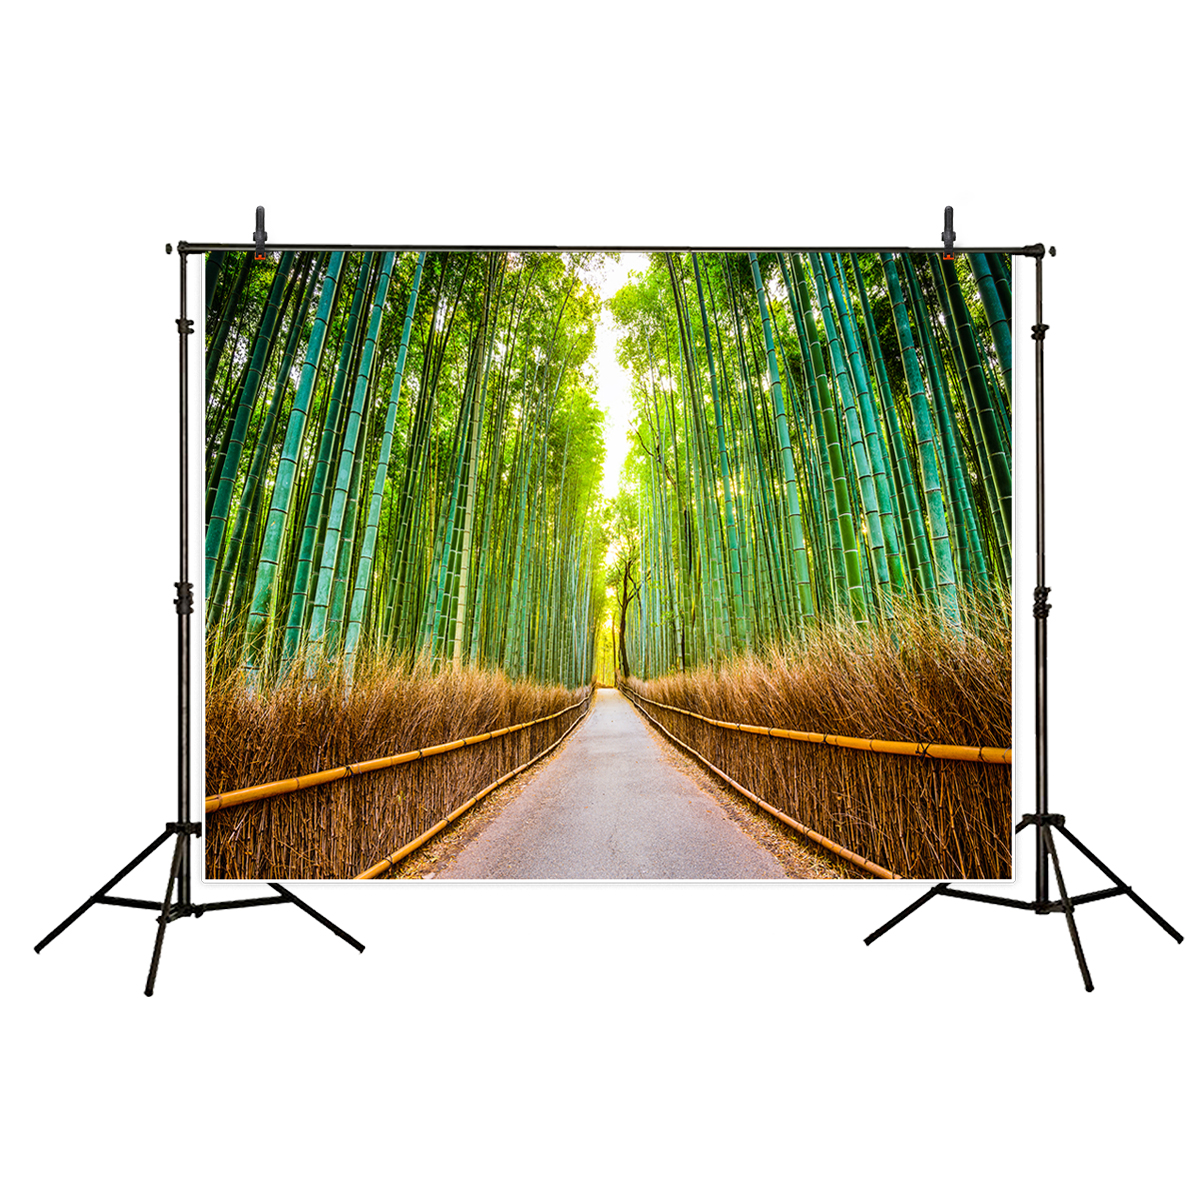 6x6FT Vinyl Wall Photography Backdrop,Panda,Bamboo Forest in Summertime Photo Backdrop Baby Newborn Photo Studio Props